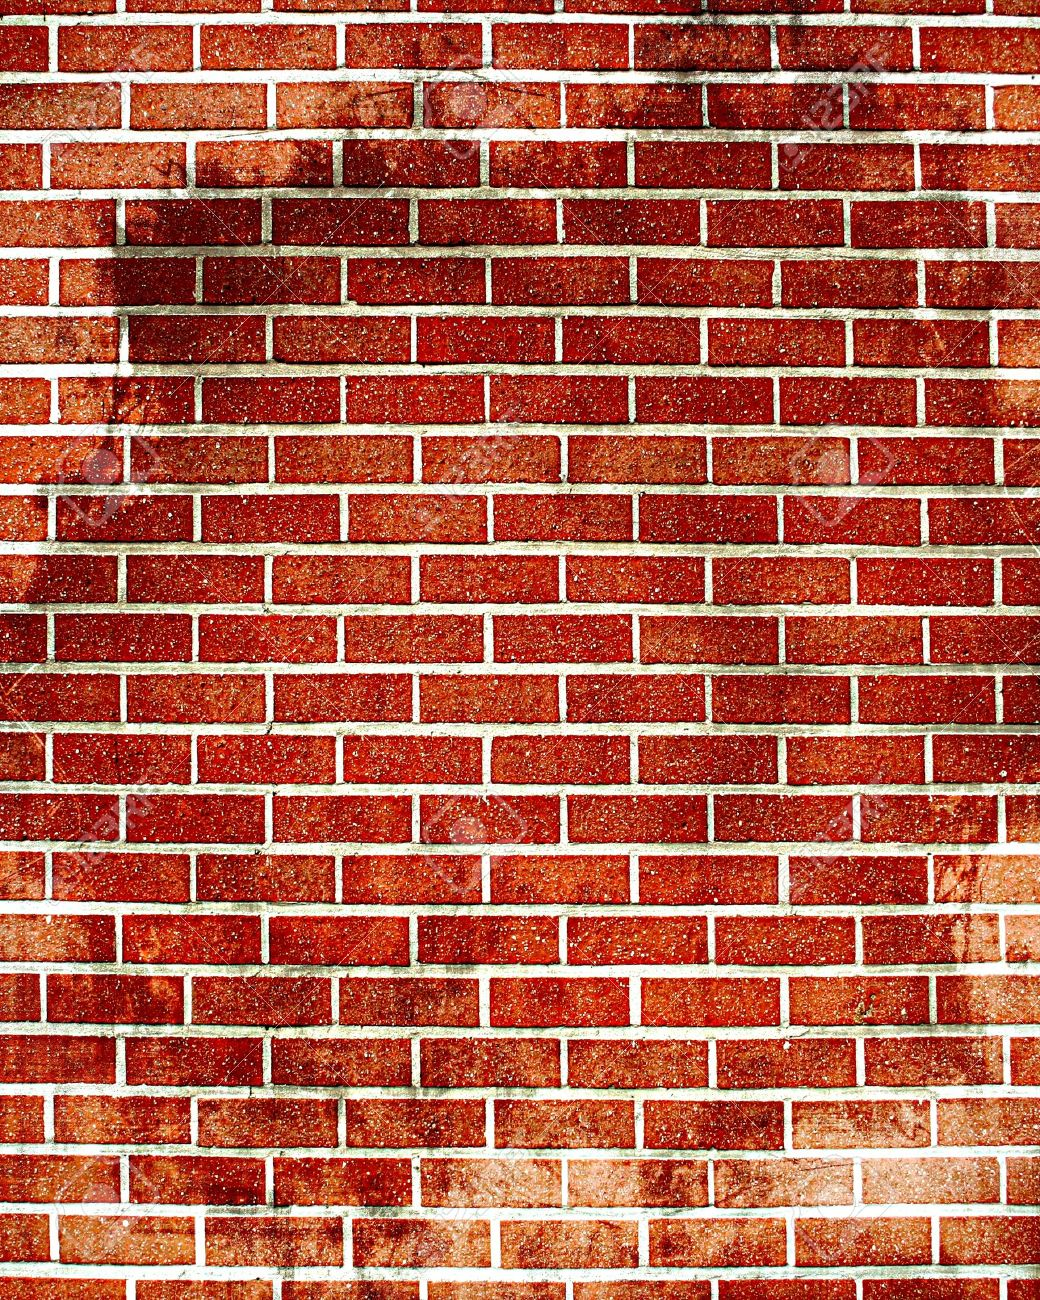 Grunge brick wall with some damage and cracks Stock Photo - 14949850